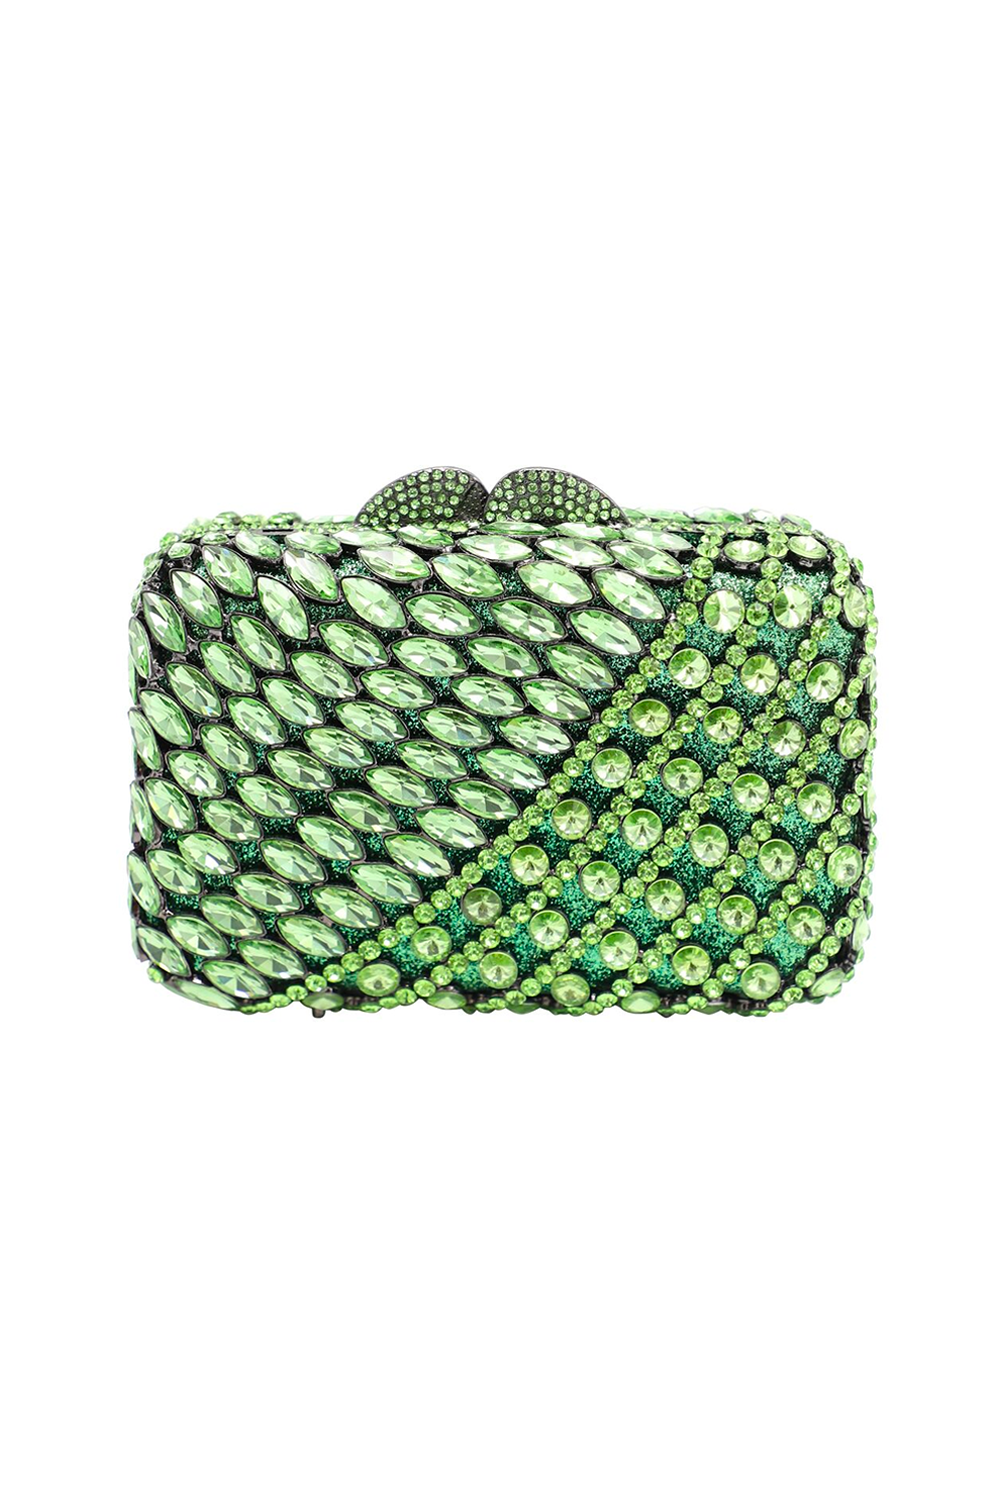 Green Diamante Evening Clutch